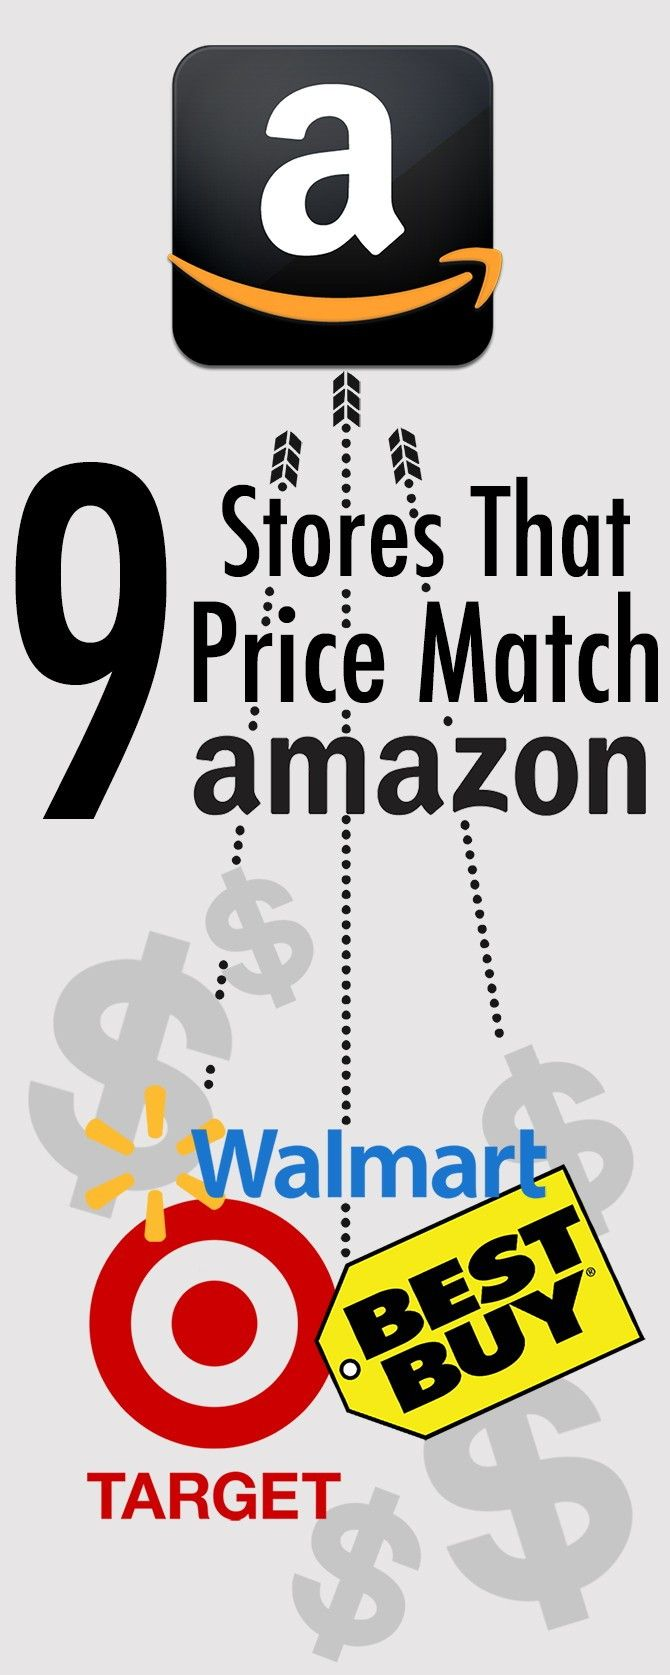 8 Retailers That Will Price Match Amazon